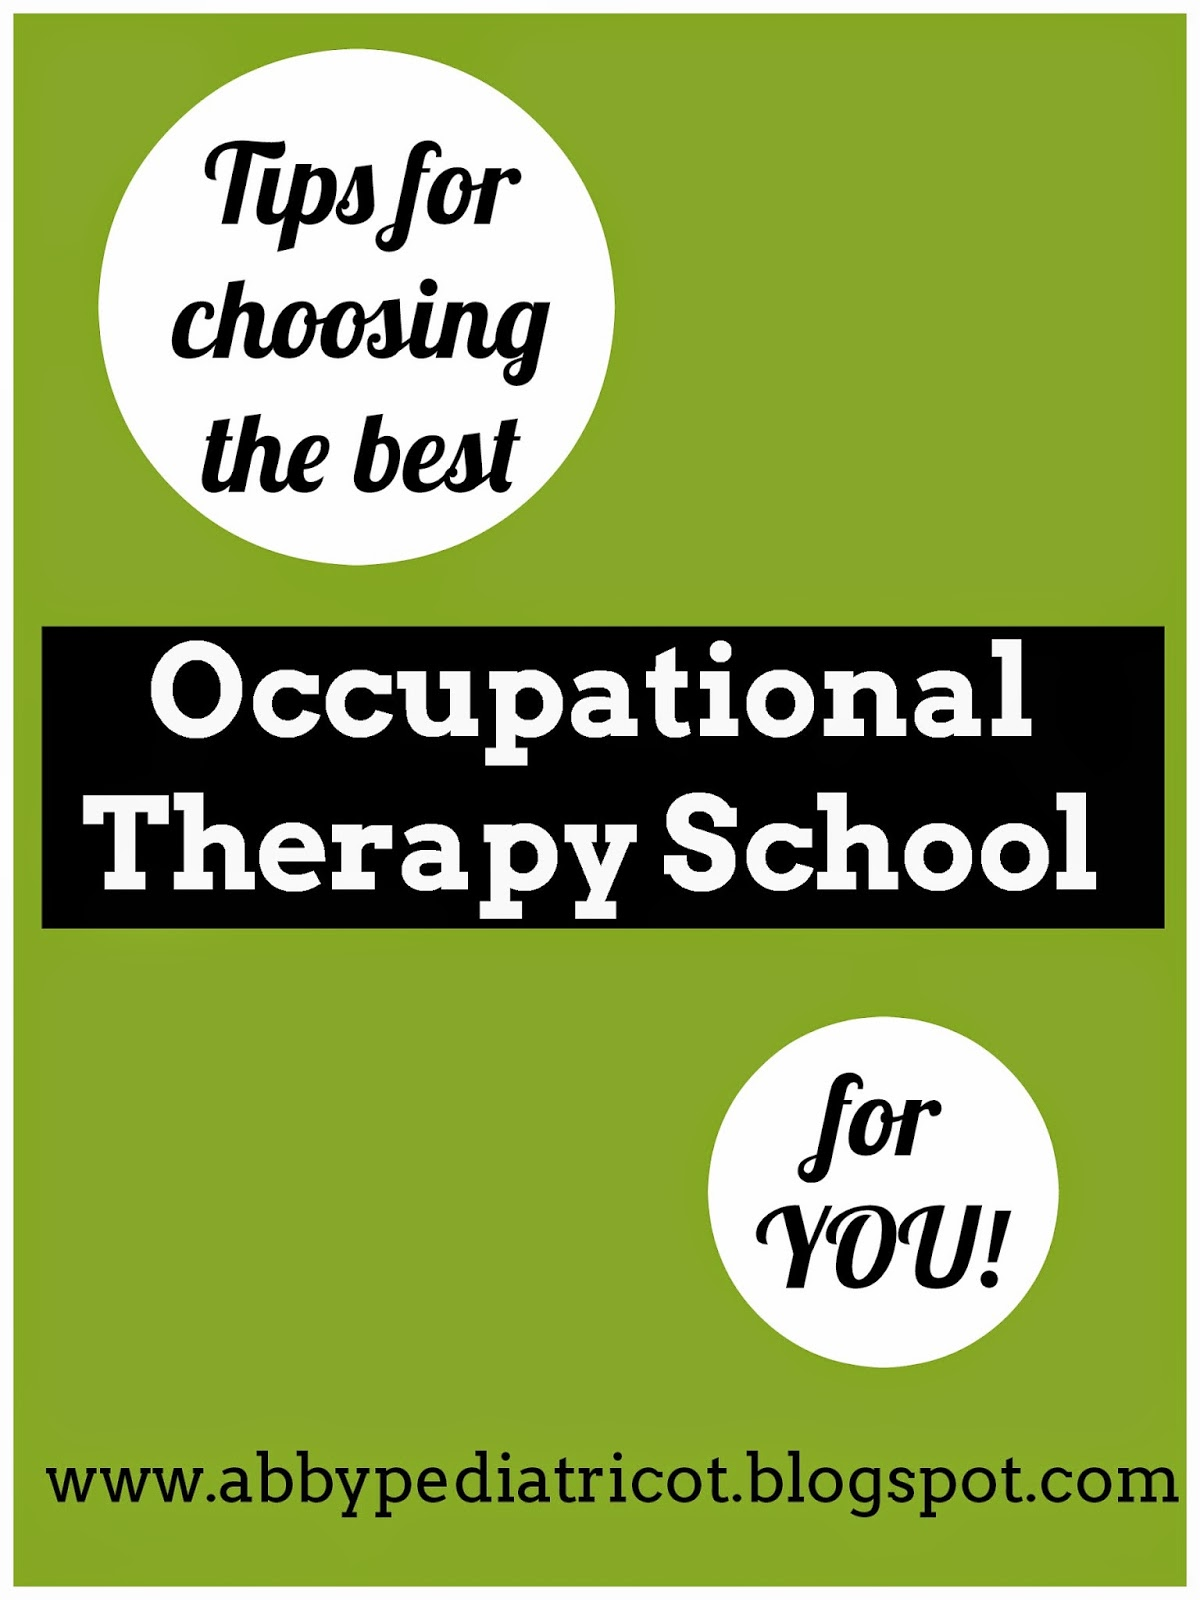 Occupational Therapy Assistant (OTA) types of academic essay